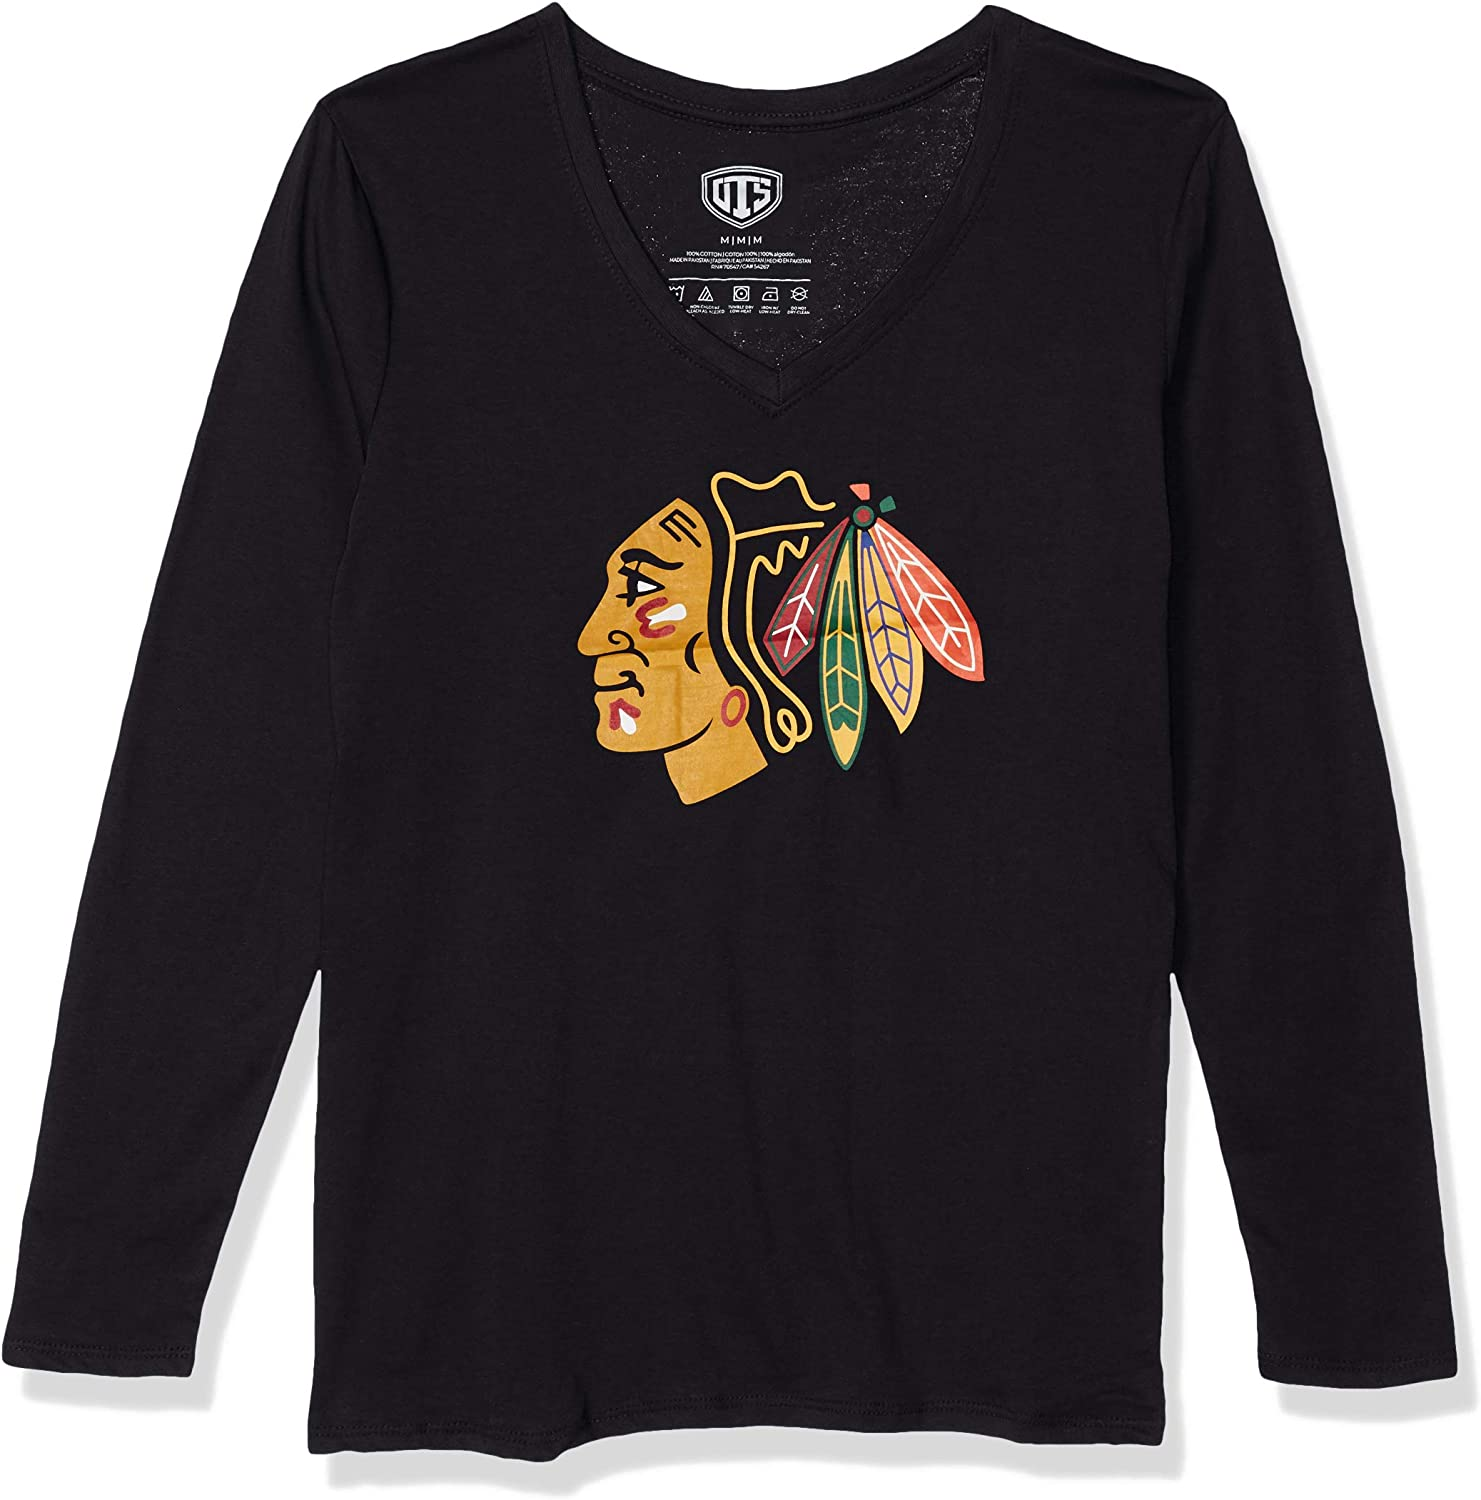 2021 autumn and winter new OTS NHL Women's Rival Long Sleeve Tee lowest price